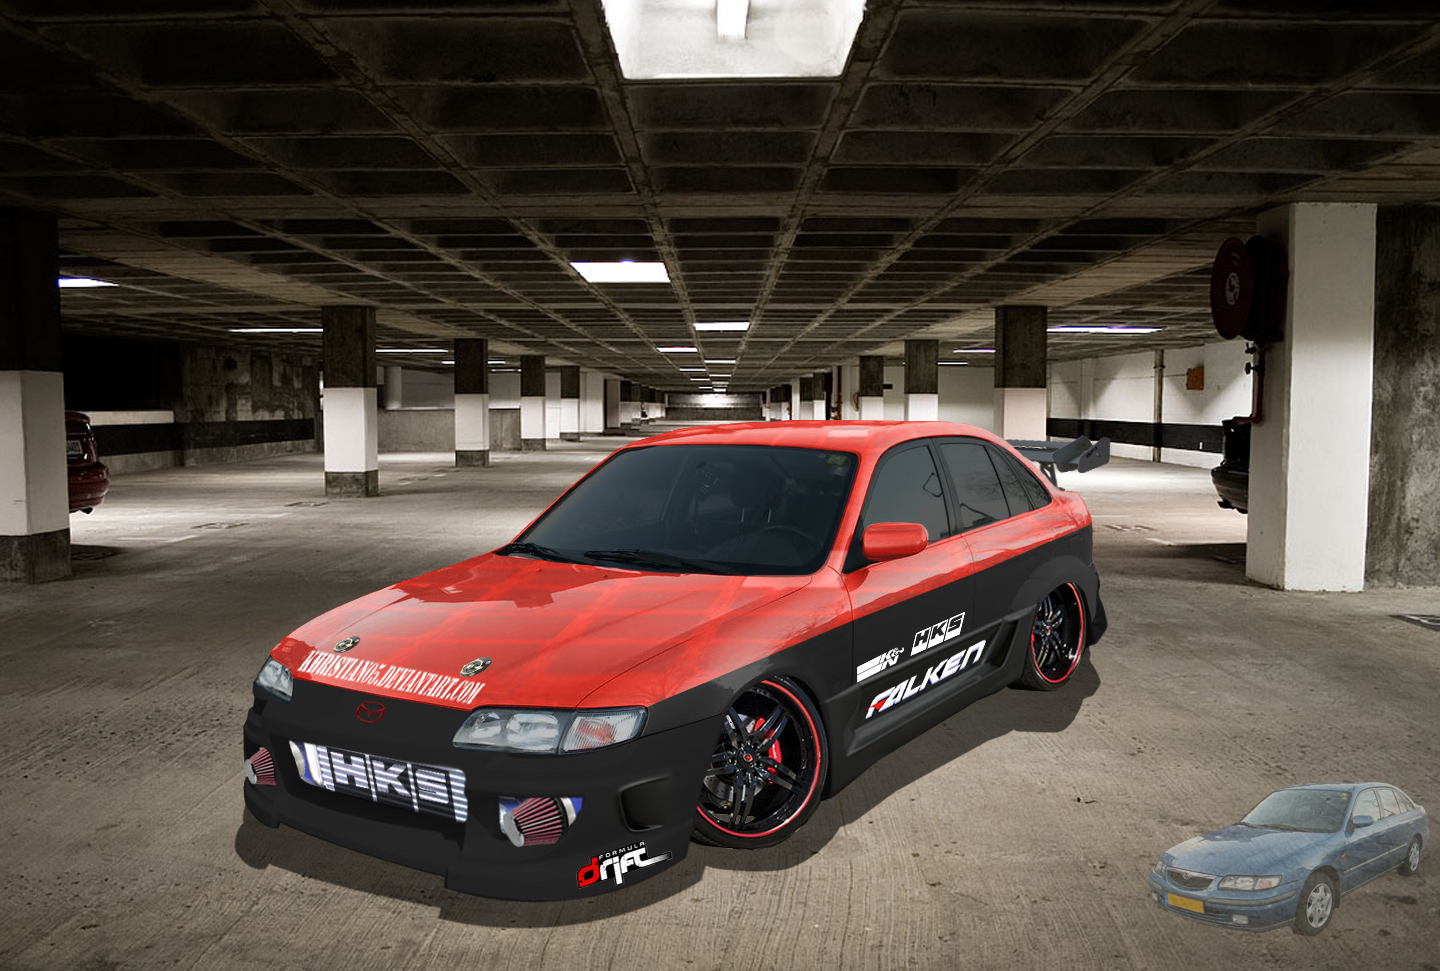 Mazda 626 glx Virtual tuning by *Khristian05 on deviantART